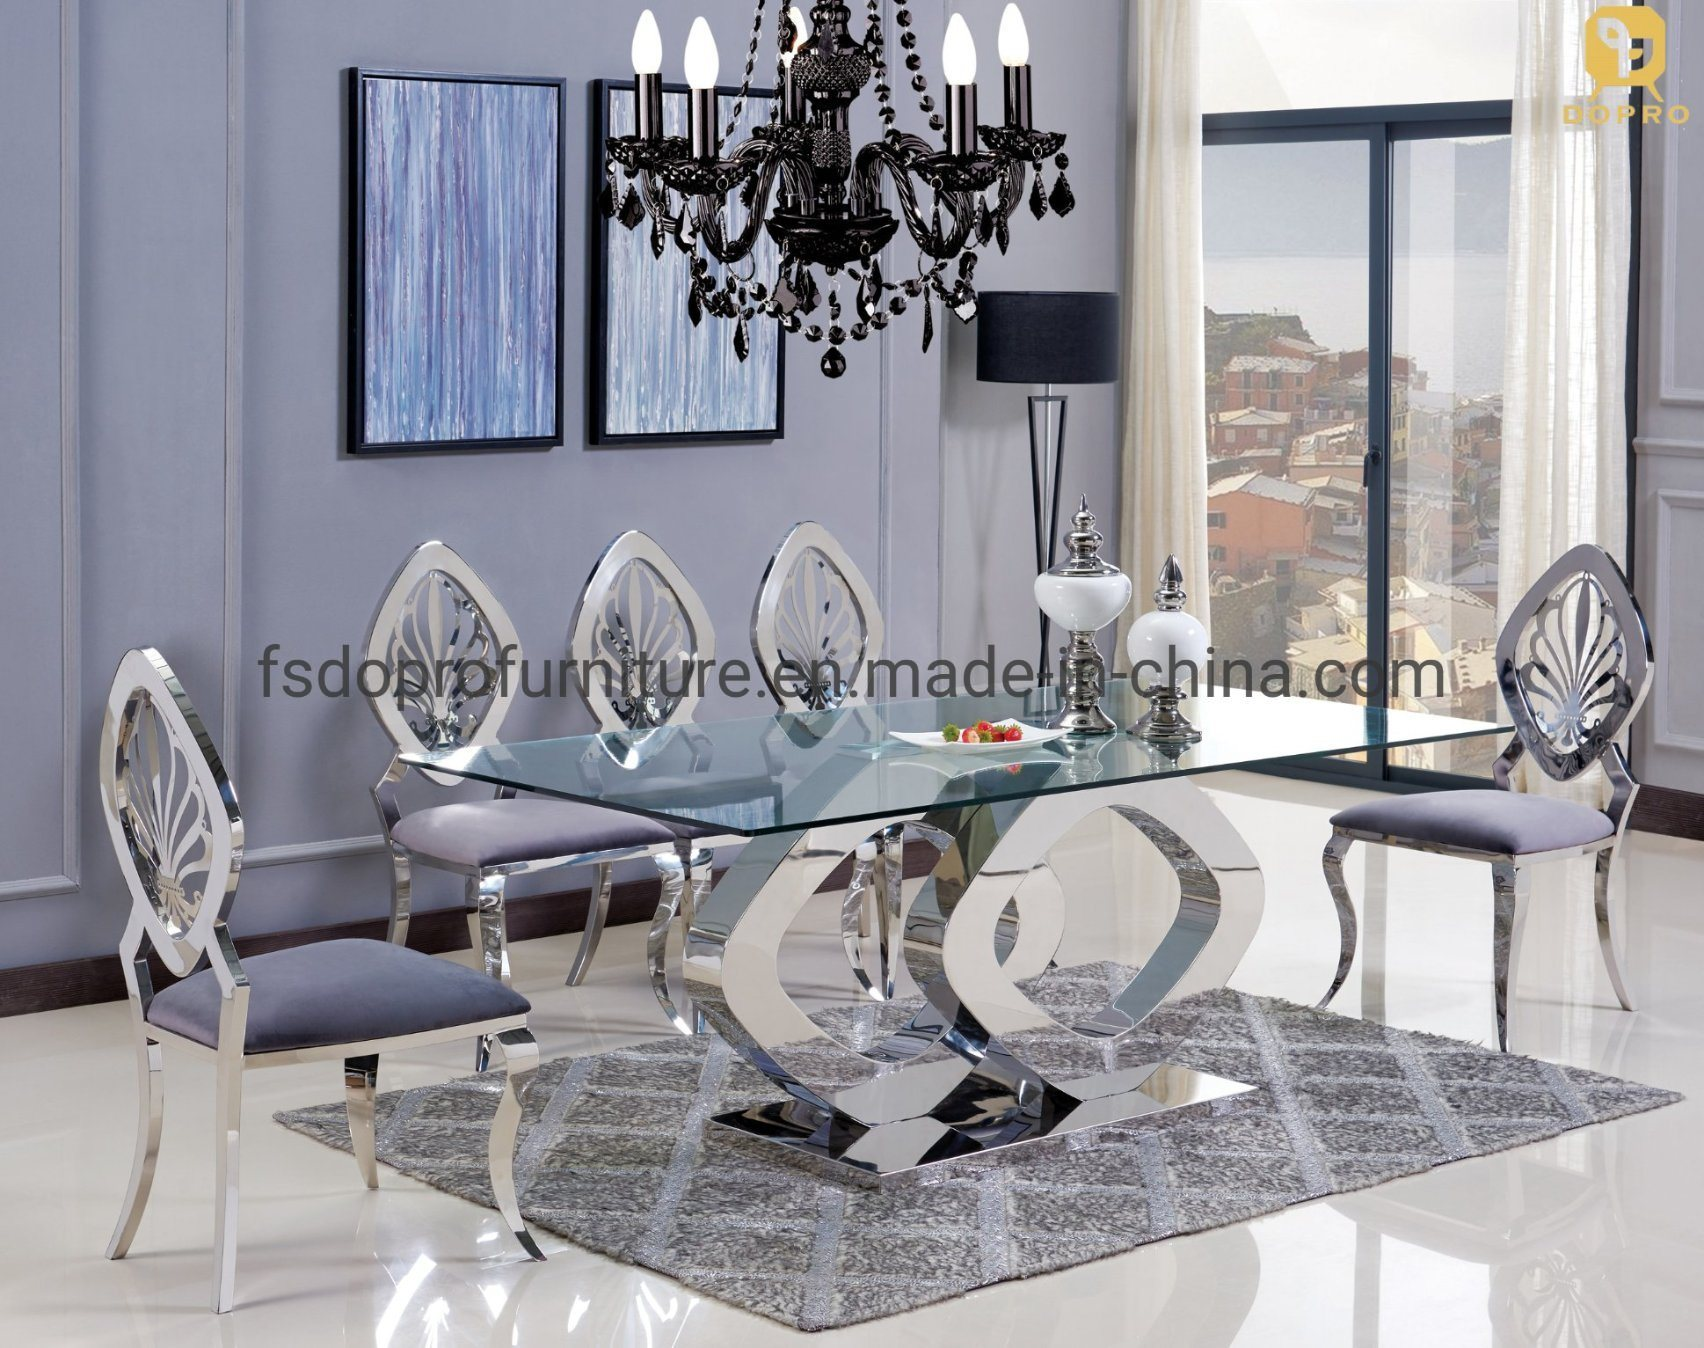 Home Furniture 9 Seats Glass Top Silver Stainless Steel Dining Table  Set D1909